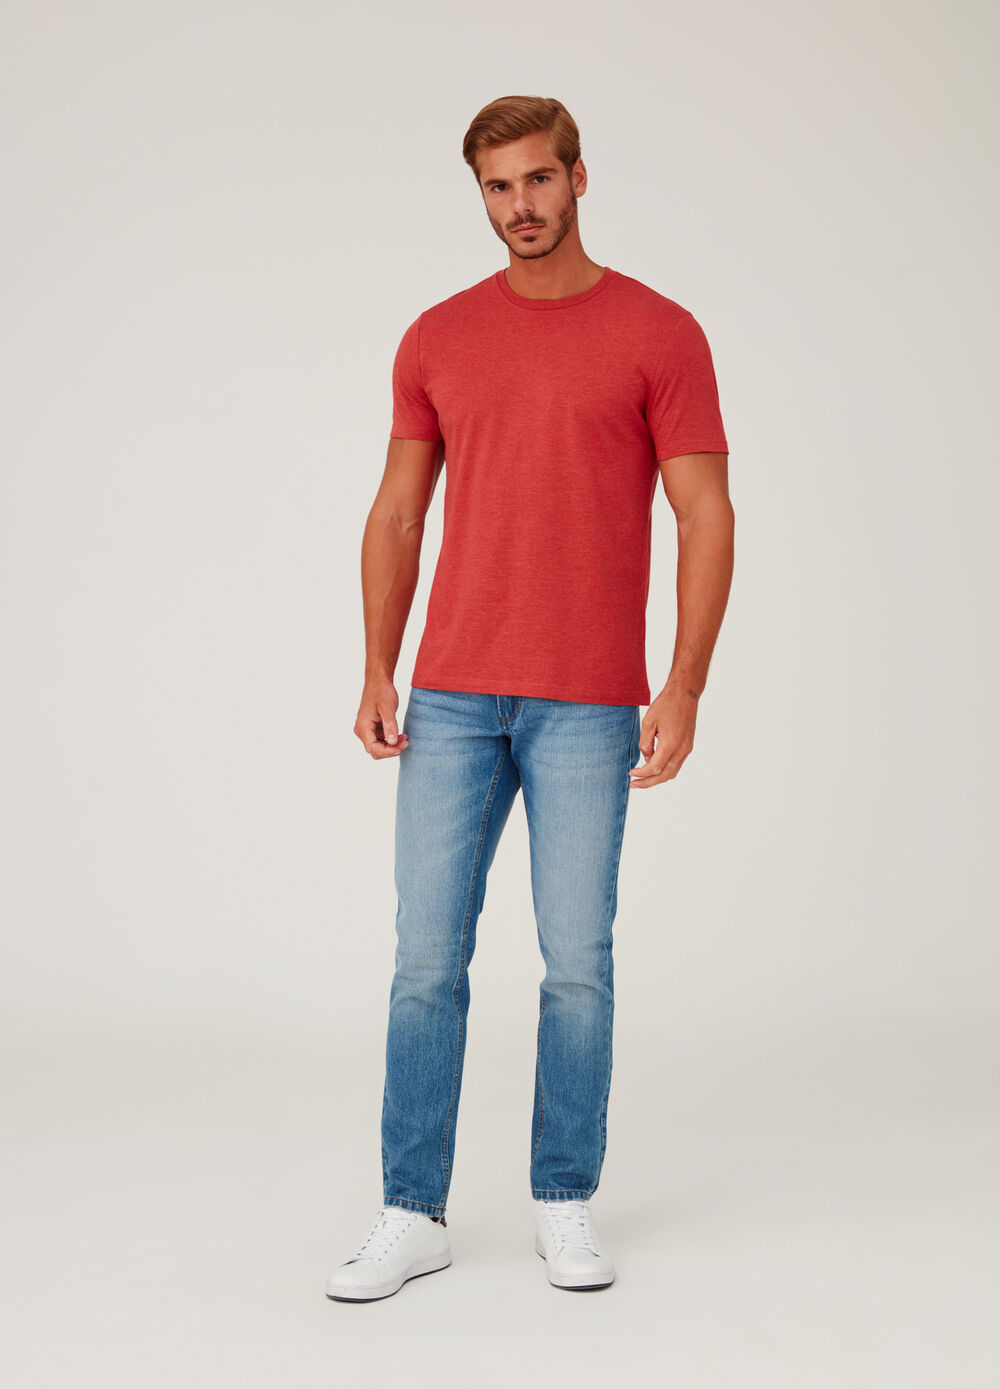 T-shirt in stretch jersey with ribbing